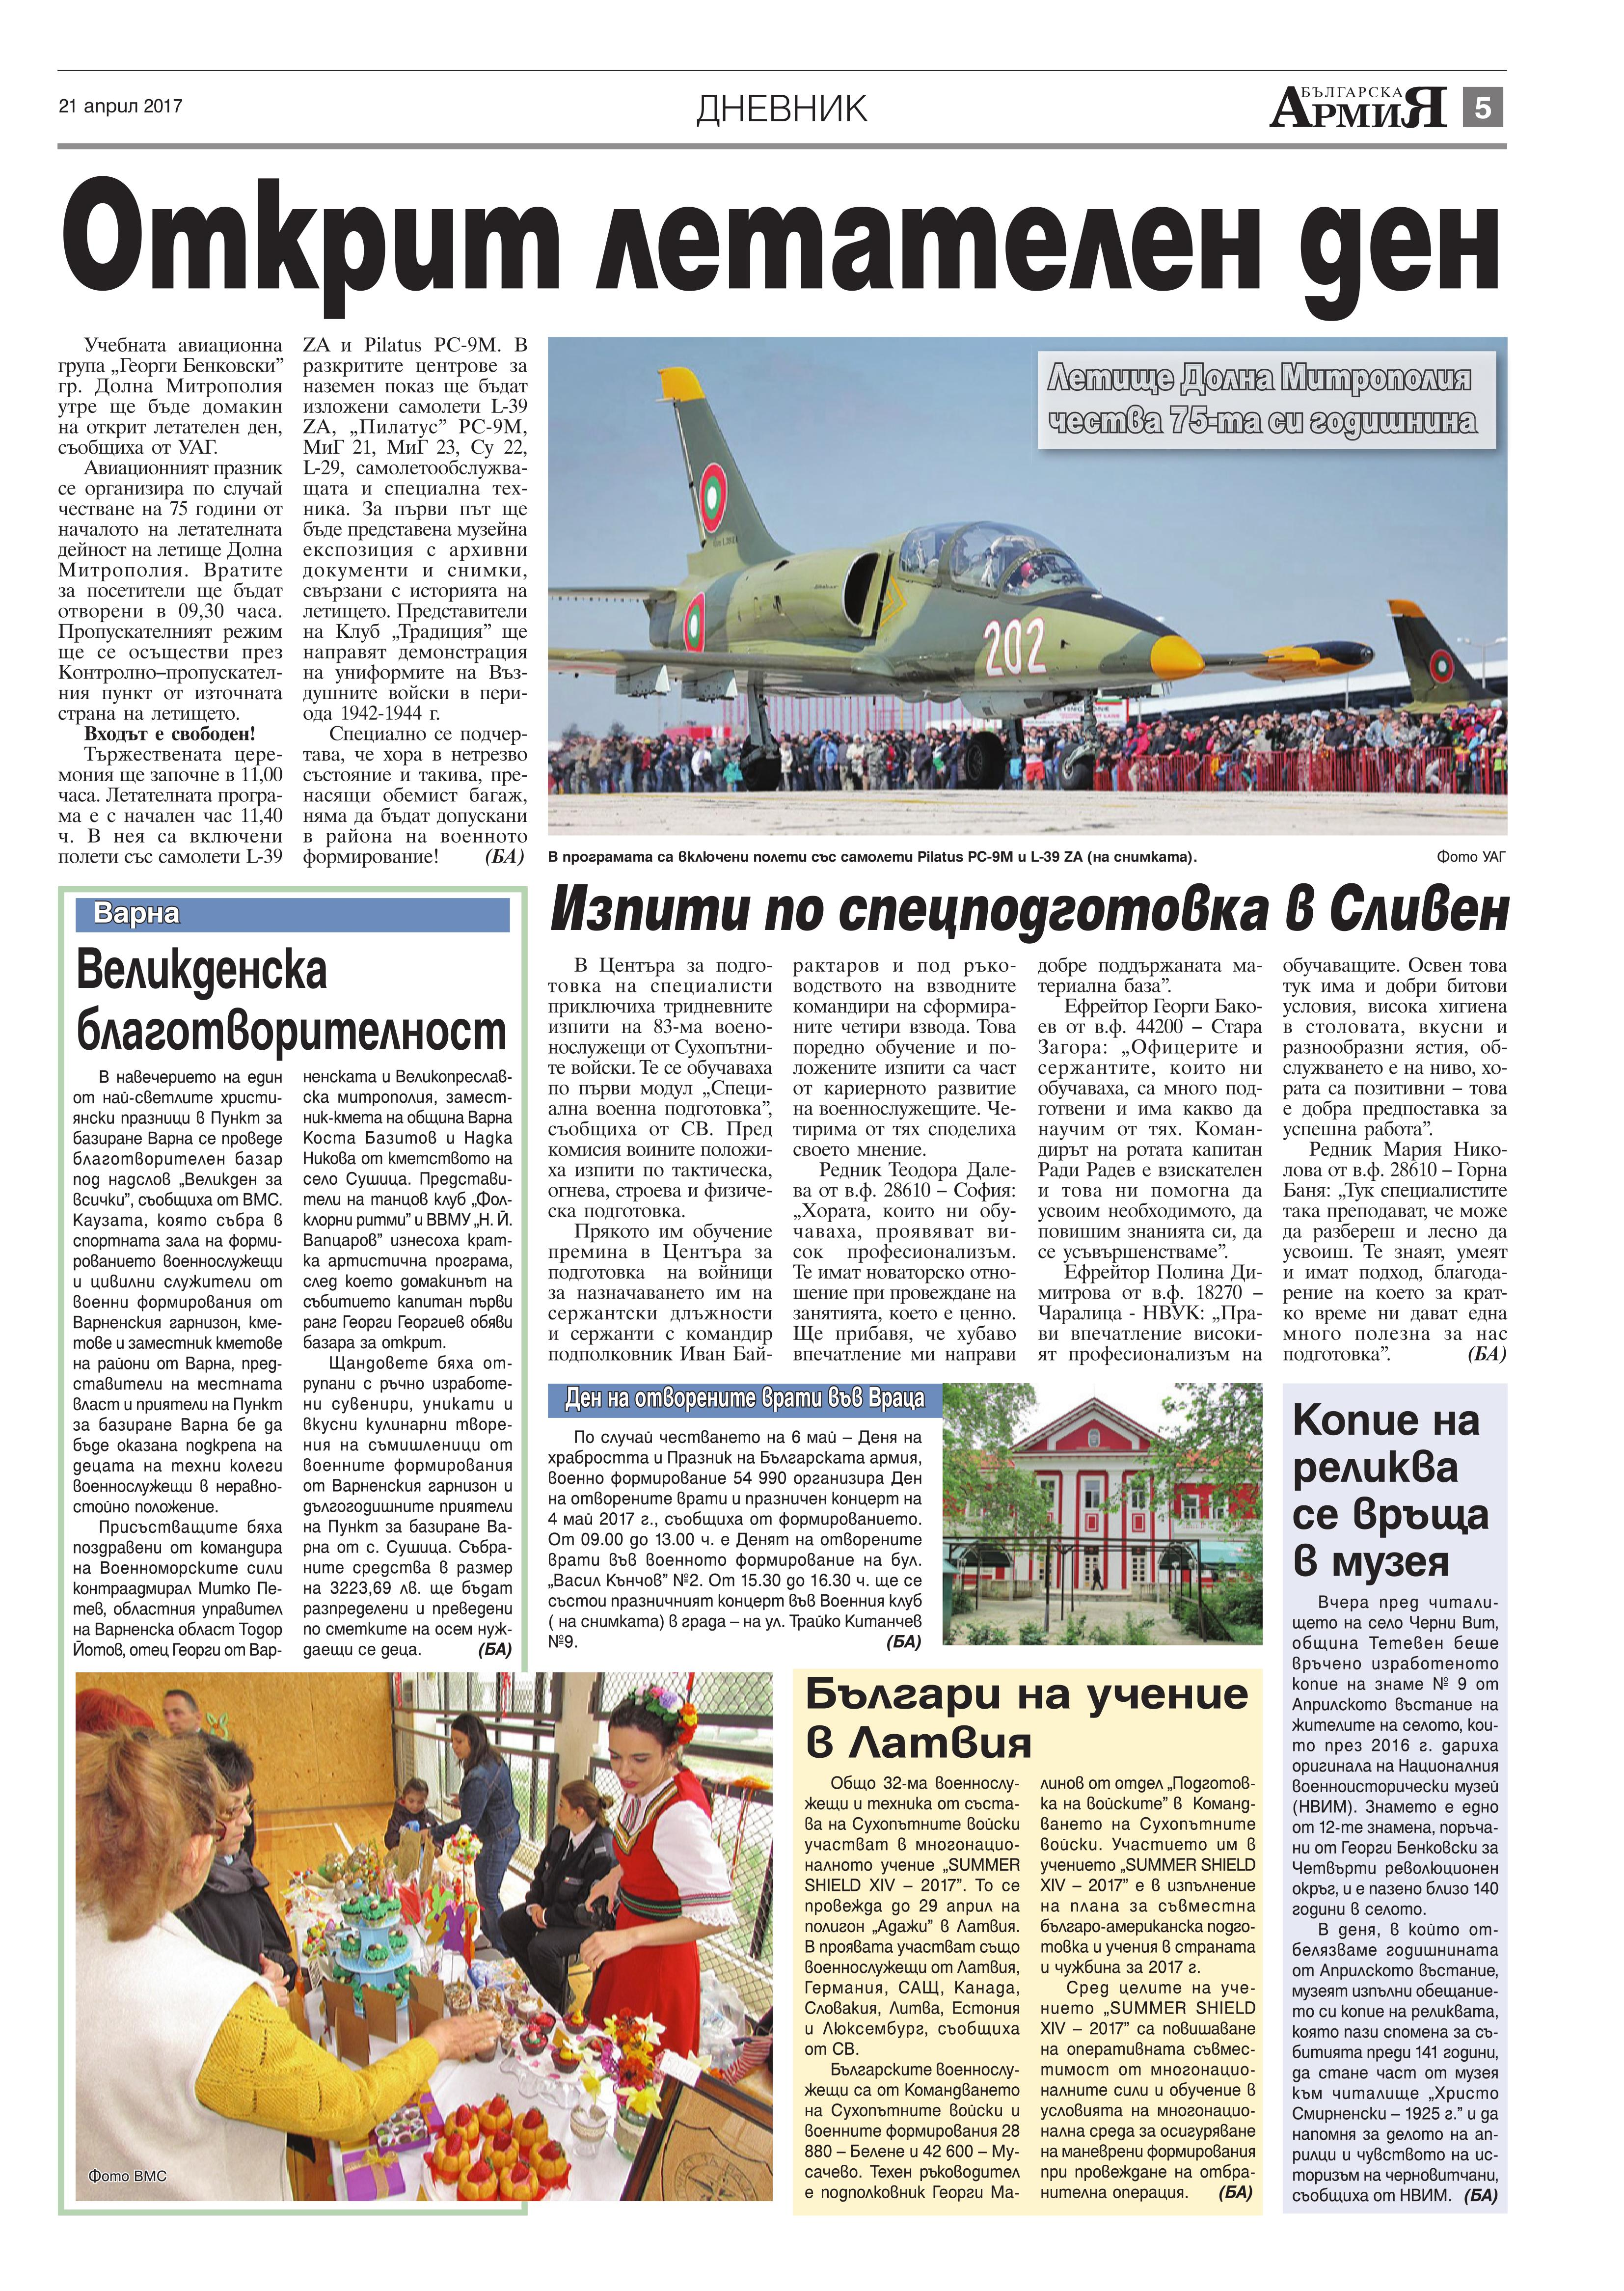 http://armymedia.bg/wp-content/uploads/2015/06/05.page1_-19.jpg